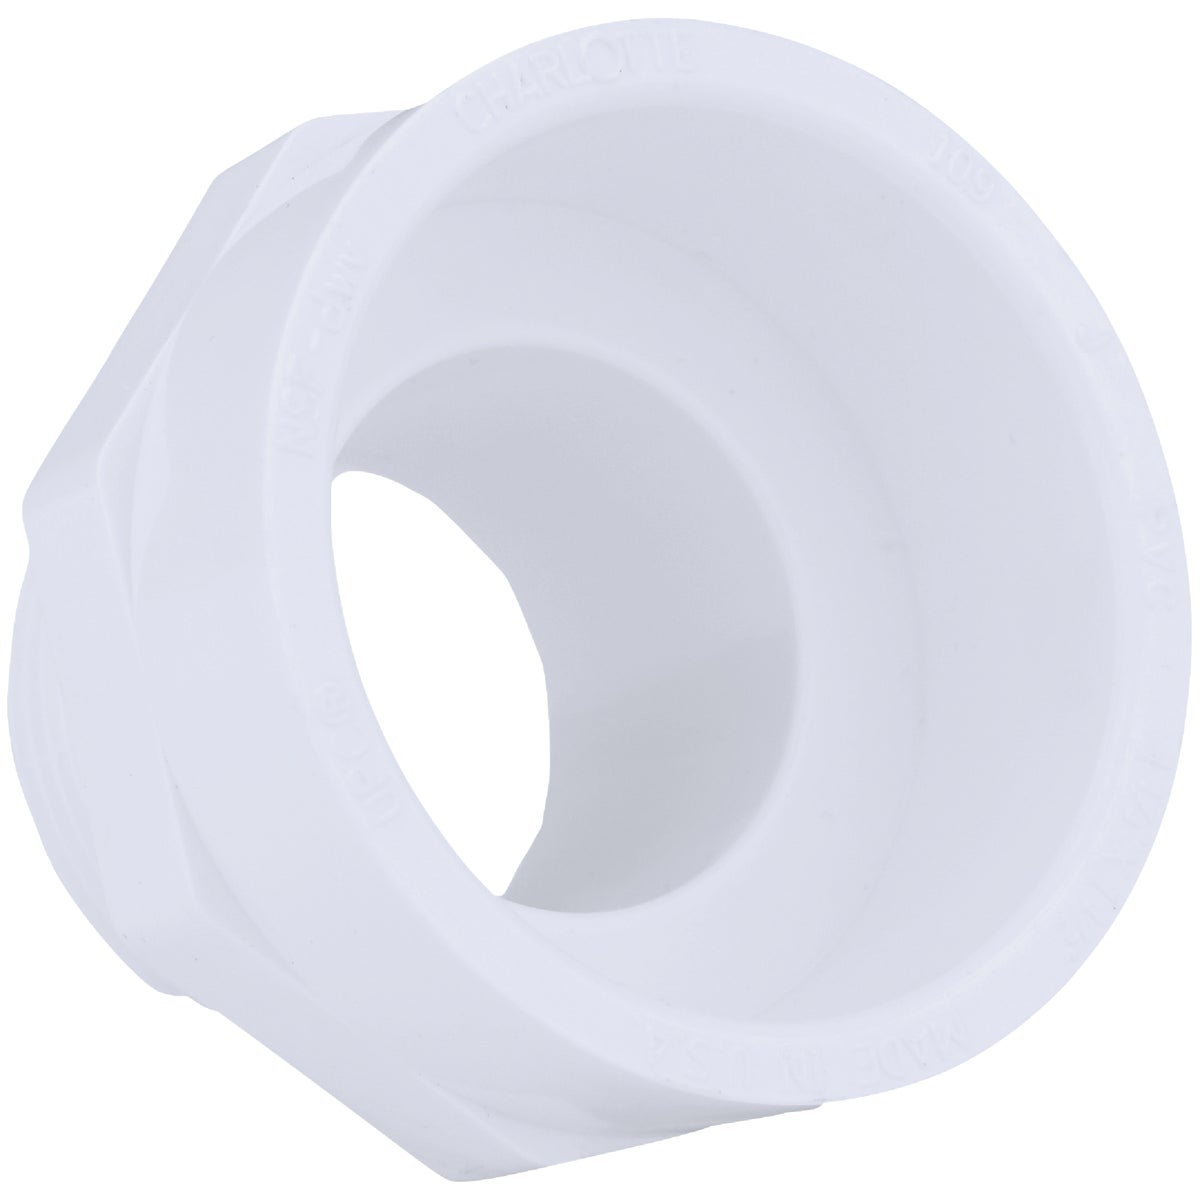 1-1/2X1-1/4 MALE ADAPTER - 70411 by Genova Inc  Pvc Dwv